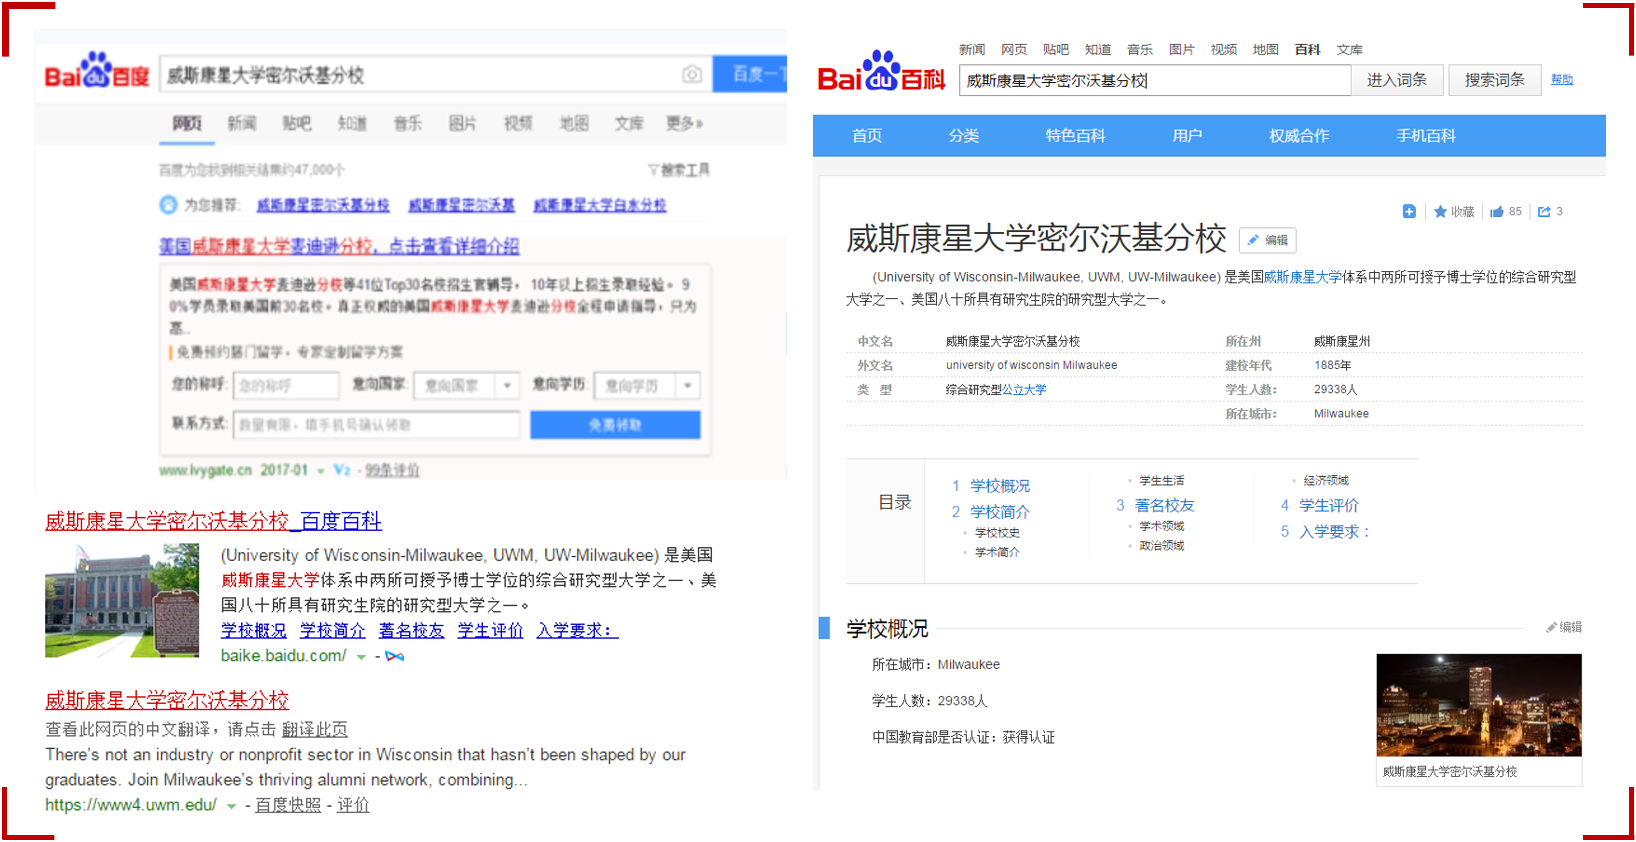 An example of Baidu search results and Baidu Baike page